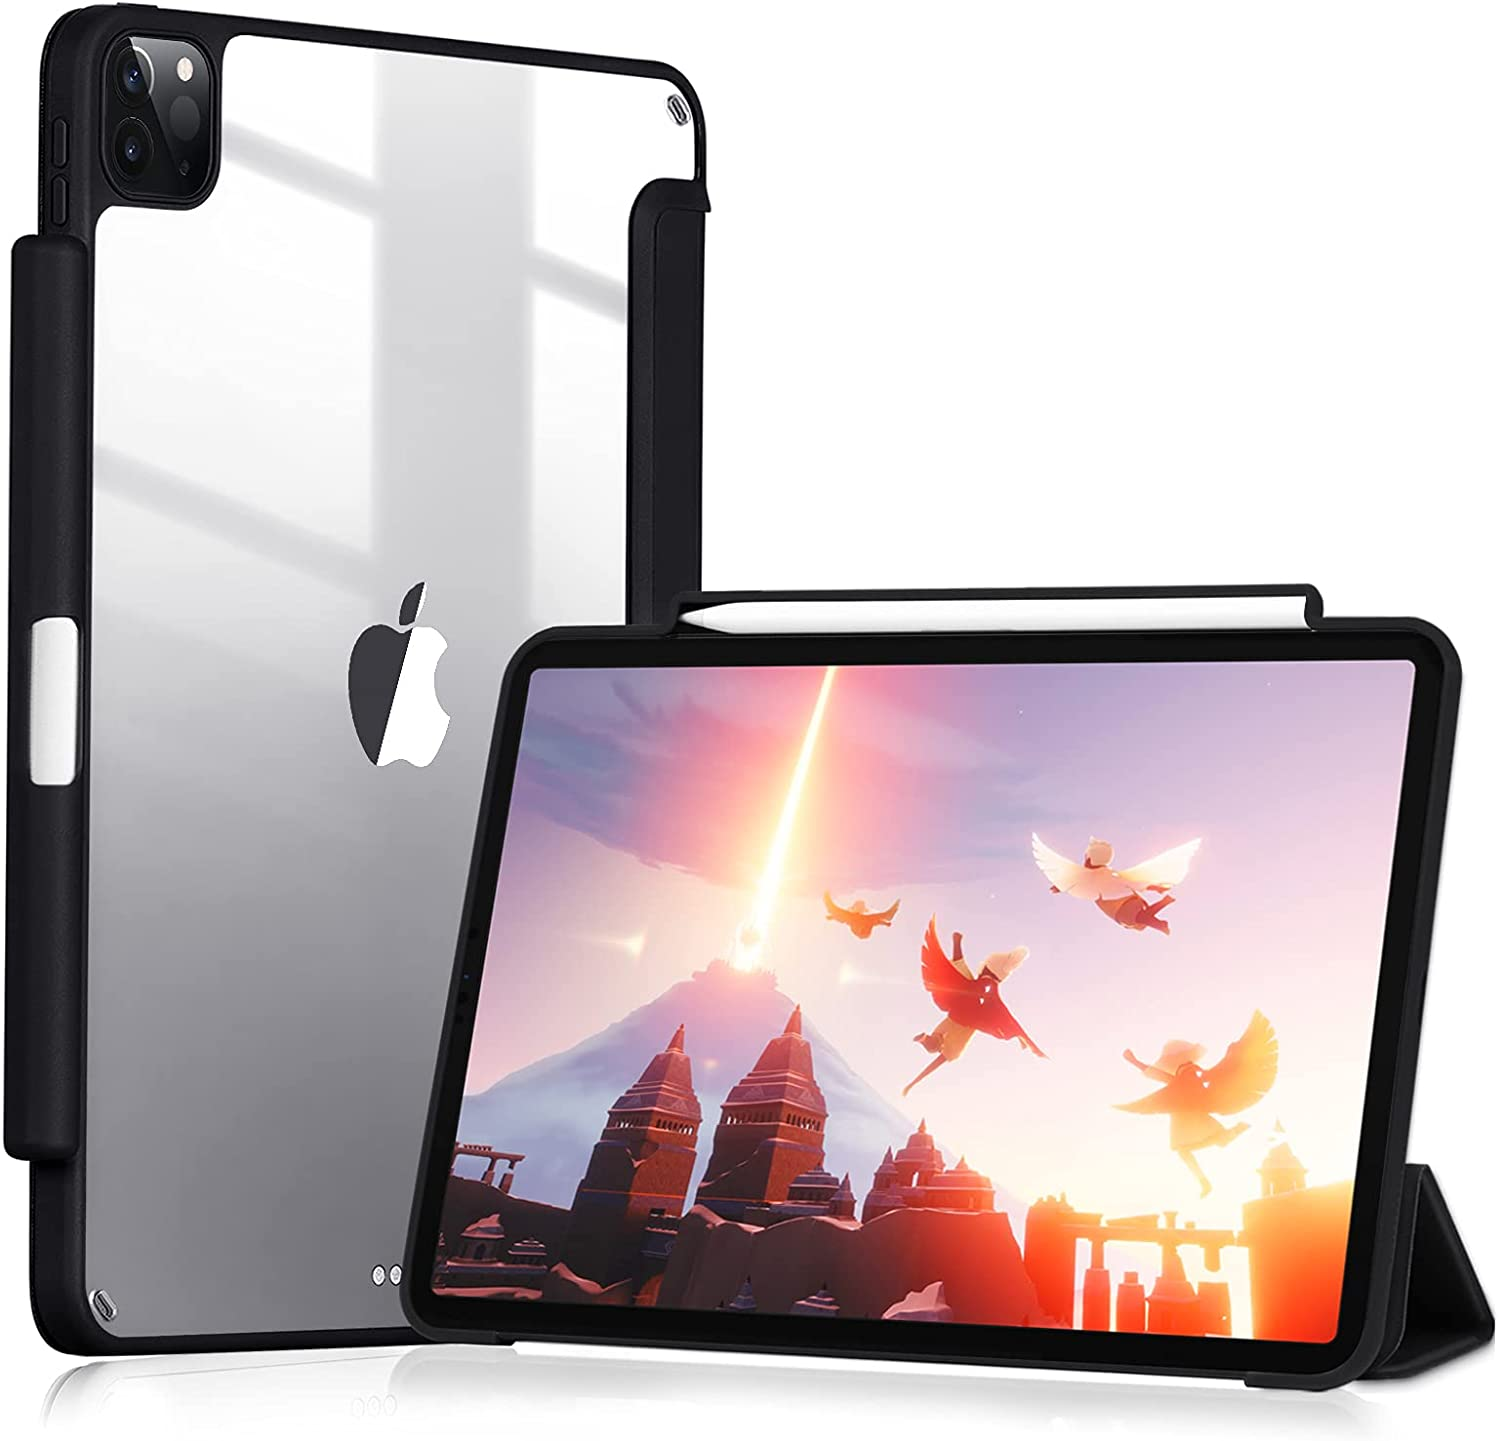 GHINL Case for iPad Pro 11 Inch 2nd Generation 2020 with Pencil Holder [Support iPad 2nd Pencil Charging & Pair] Acrylic Slim Transparent Back Cover Smart Trifold Stand Protective Cover (Black)